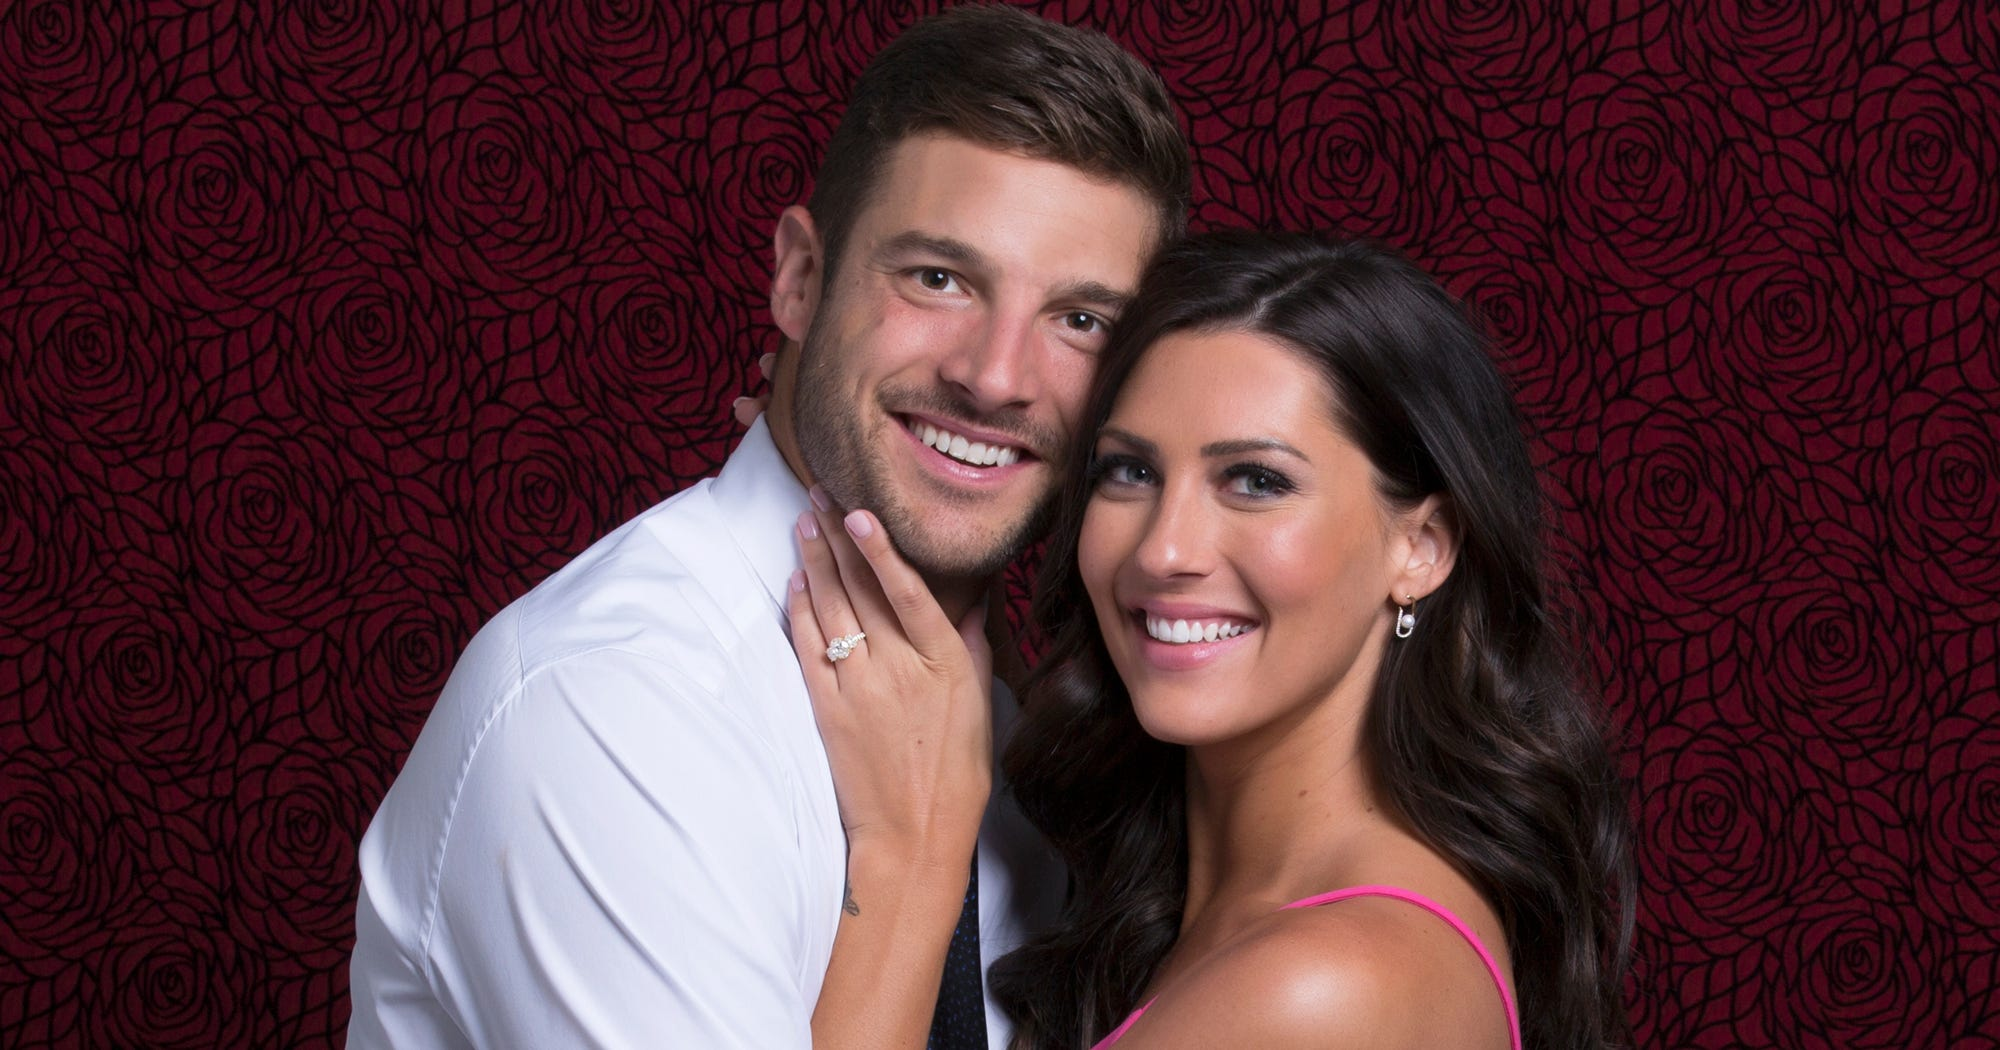 Are Bachelorette Couple Becca & Garrett Still Together?